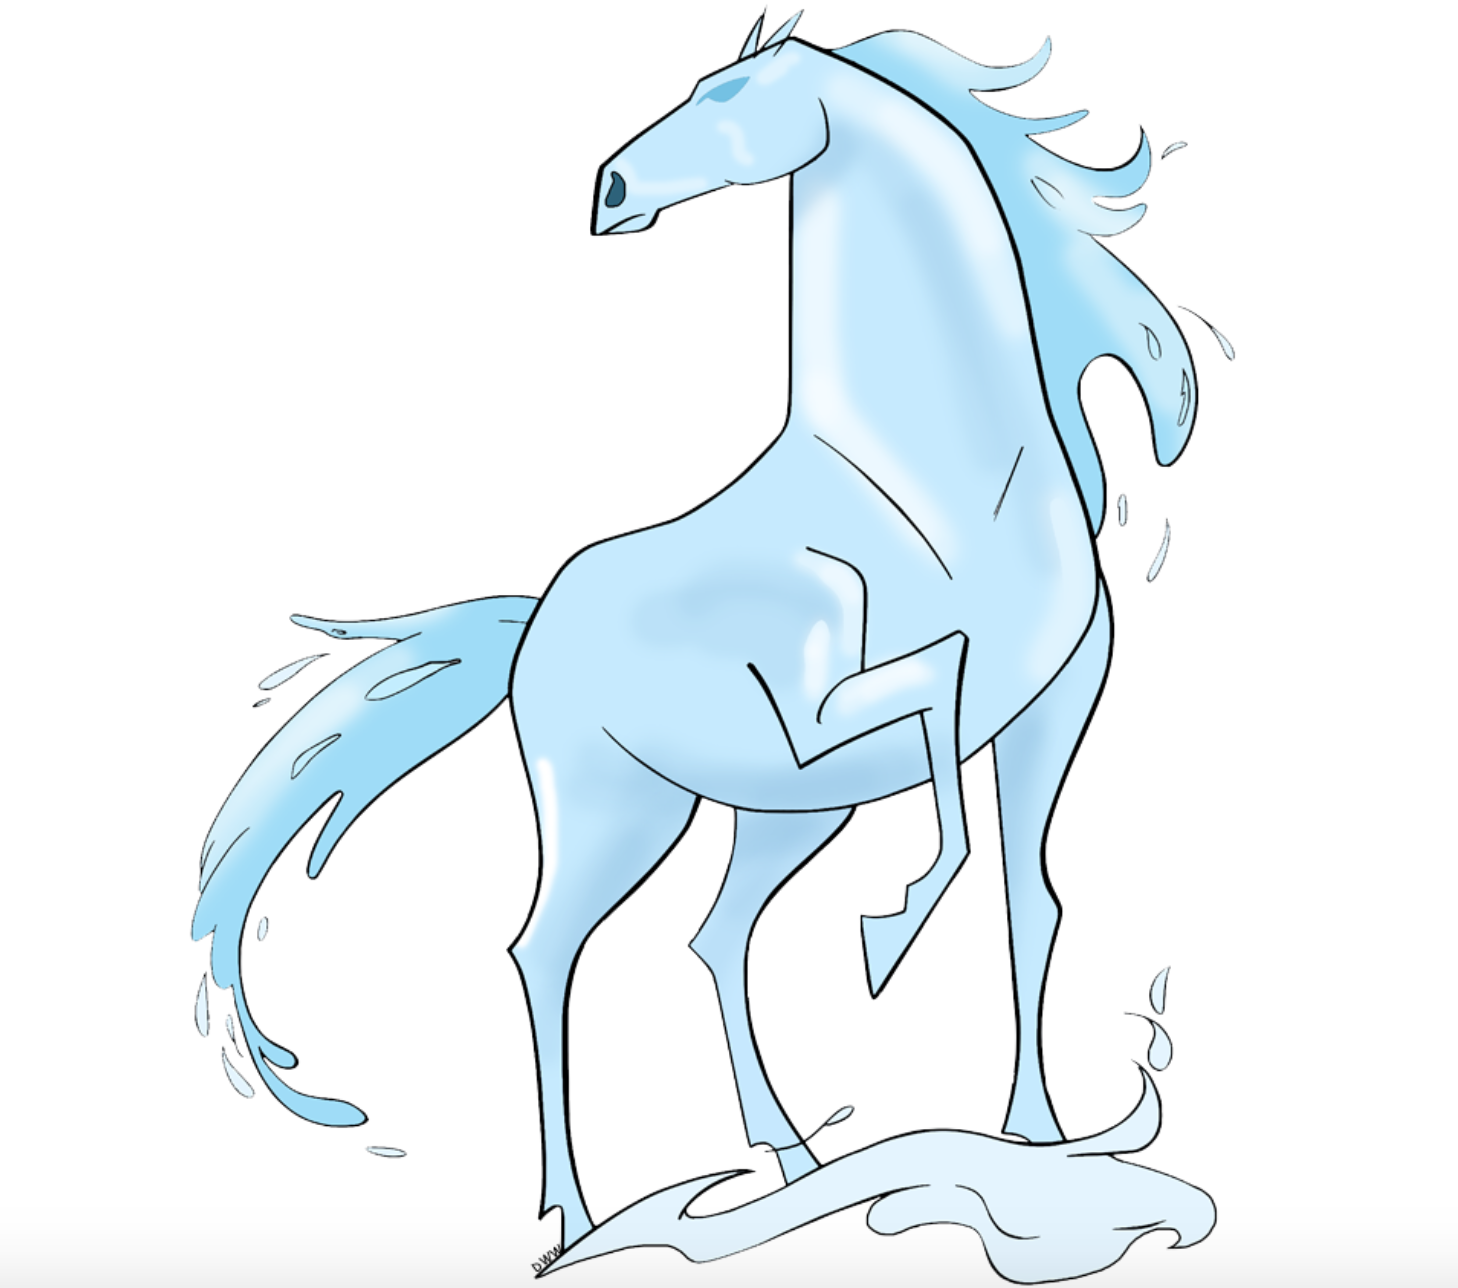 Nokk Elsa S Water Spirit Horse From Frozen 2 Frozen Art Horse Sketch Cool Girl Drawings